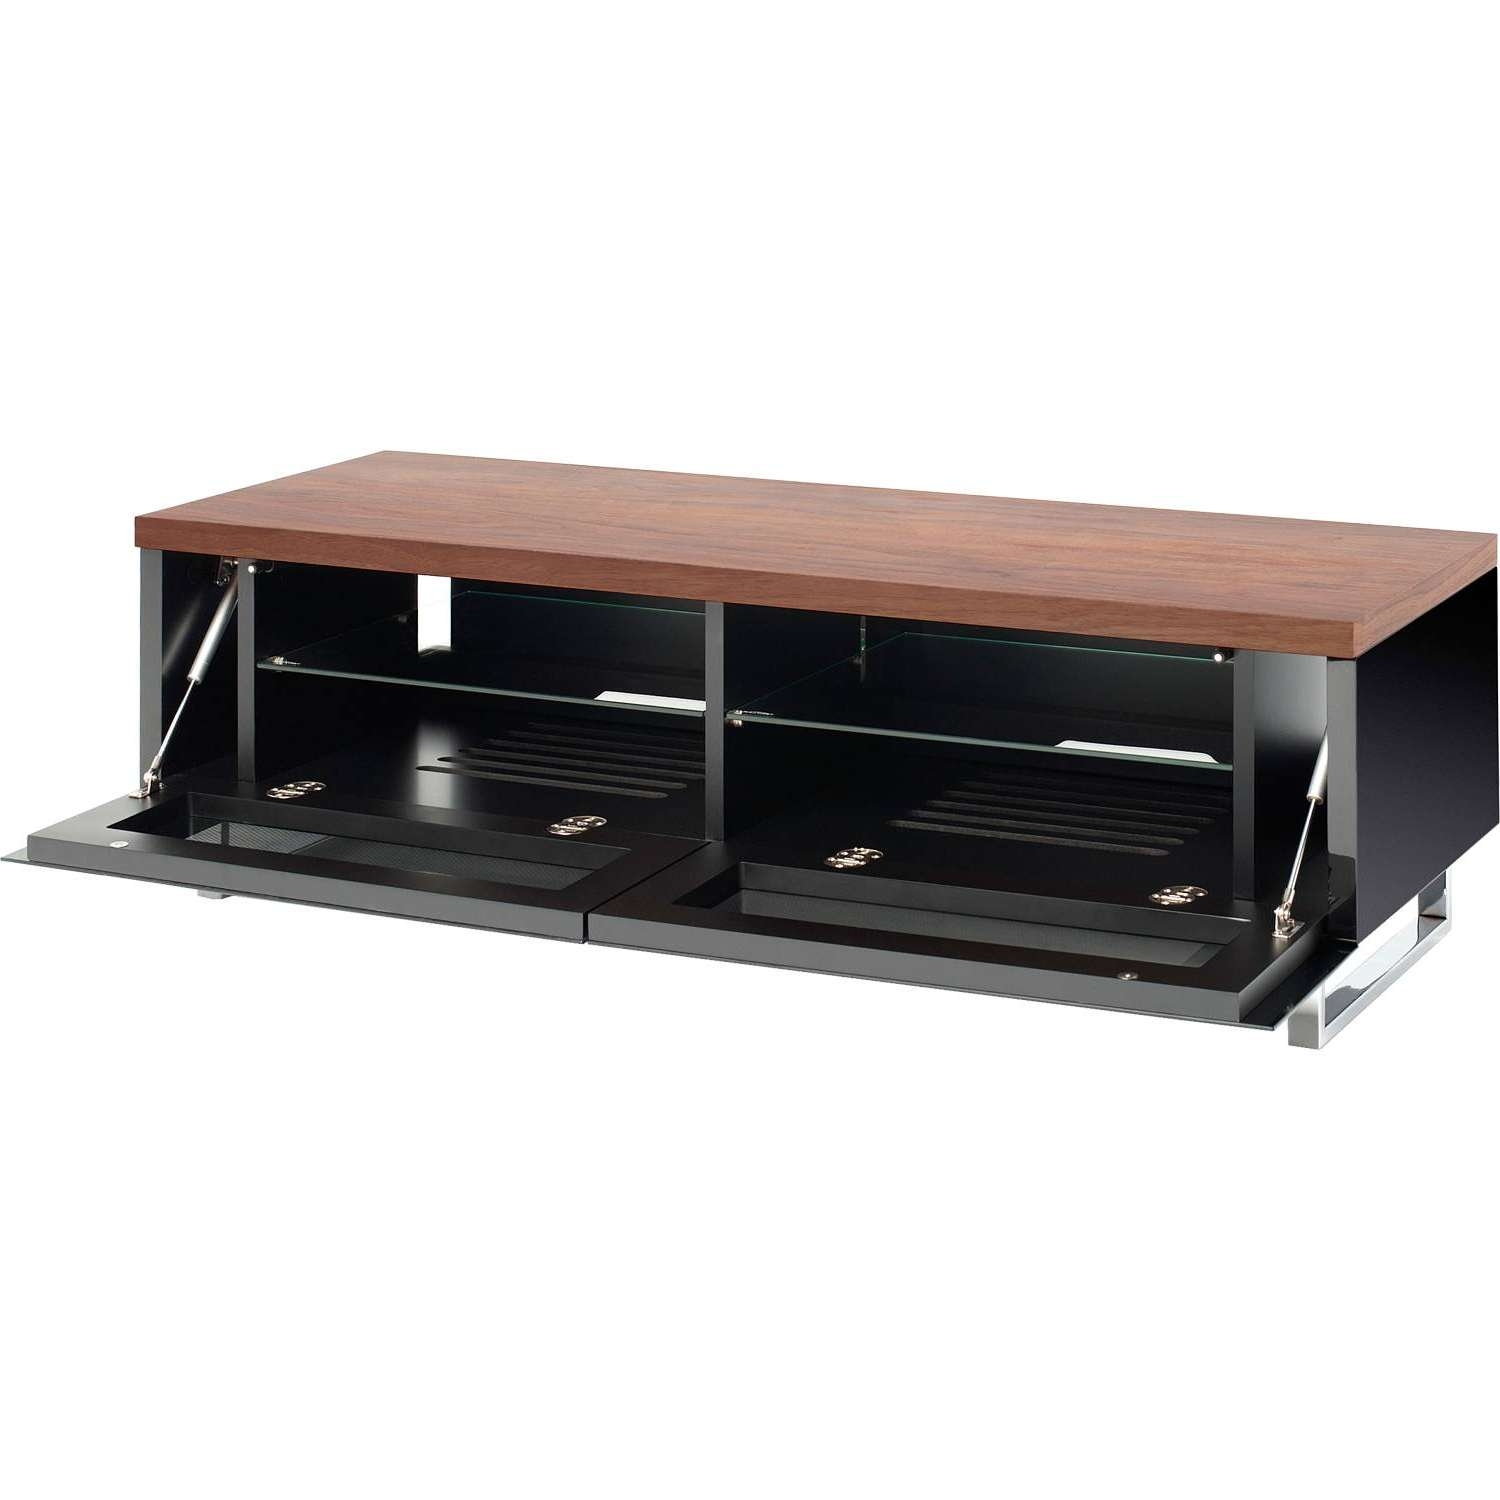 Techlink Panorama Pm120W Piano Black & Walnut Tv Stand For Up To Within Techlink Panorama Walnut Tv Stands (View 13 of 15)